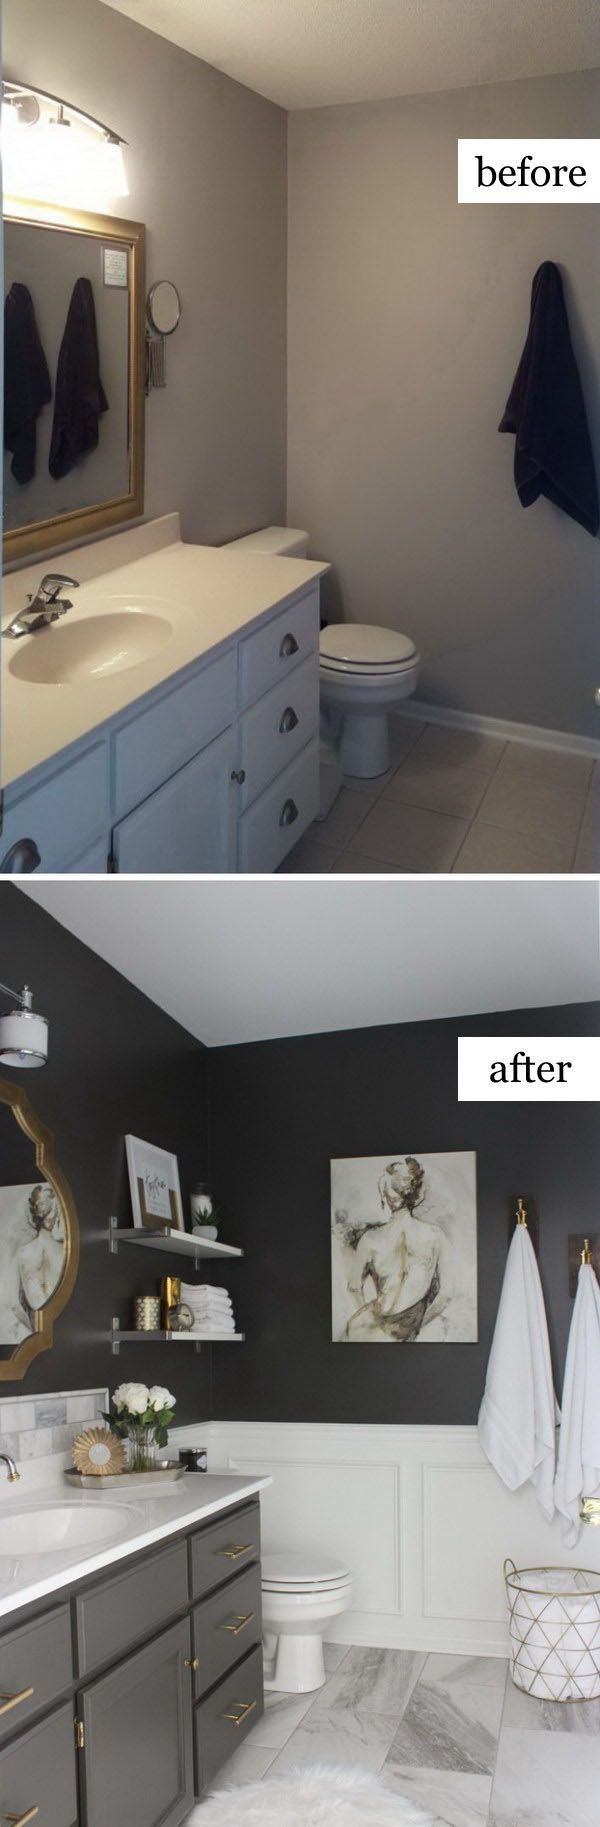 redoing bathroom%0A awesome Before and After Makeovers      Most Beautiful Bathroom Remodeling  Ideas  BathroomBeforeandAfter